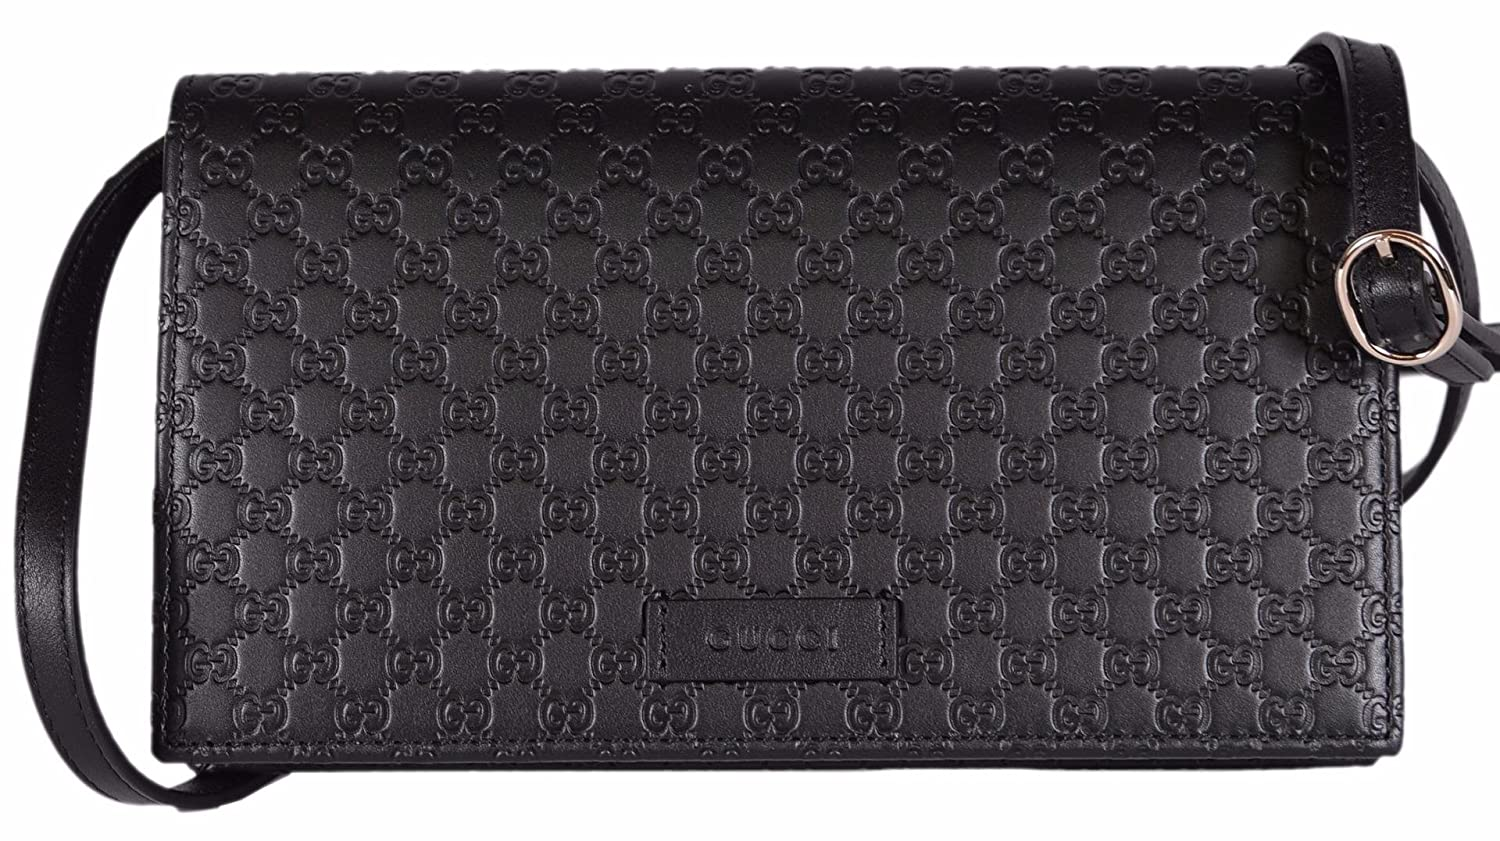 710011f540a Amazon.com  Gucci Women s Leather Micro GG Guccissima Mini Crossbody Wallet Bag  Purse (Black)  Shoes